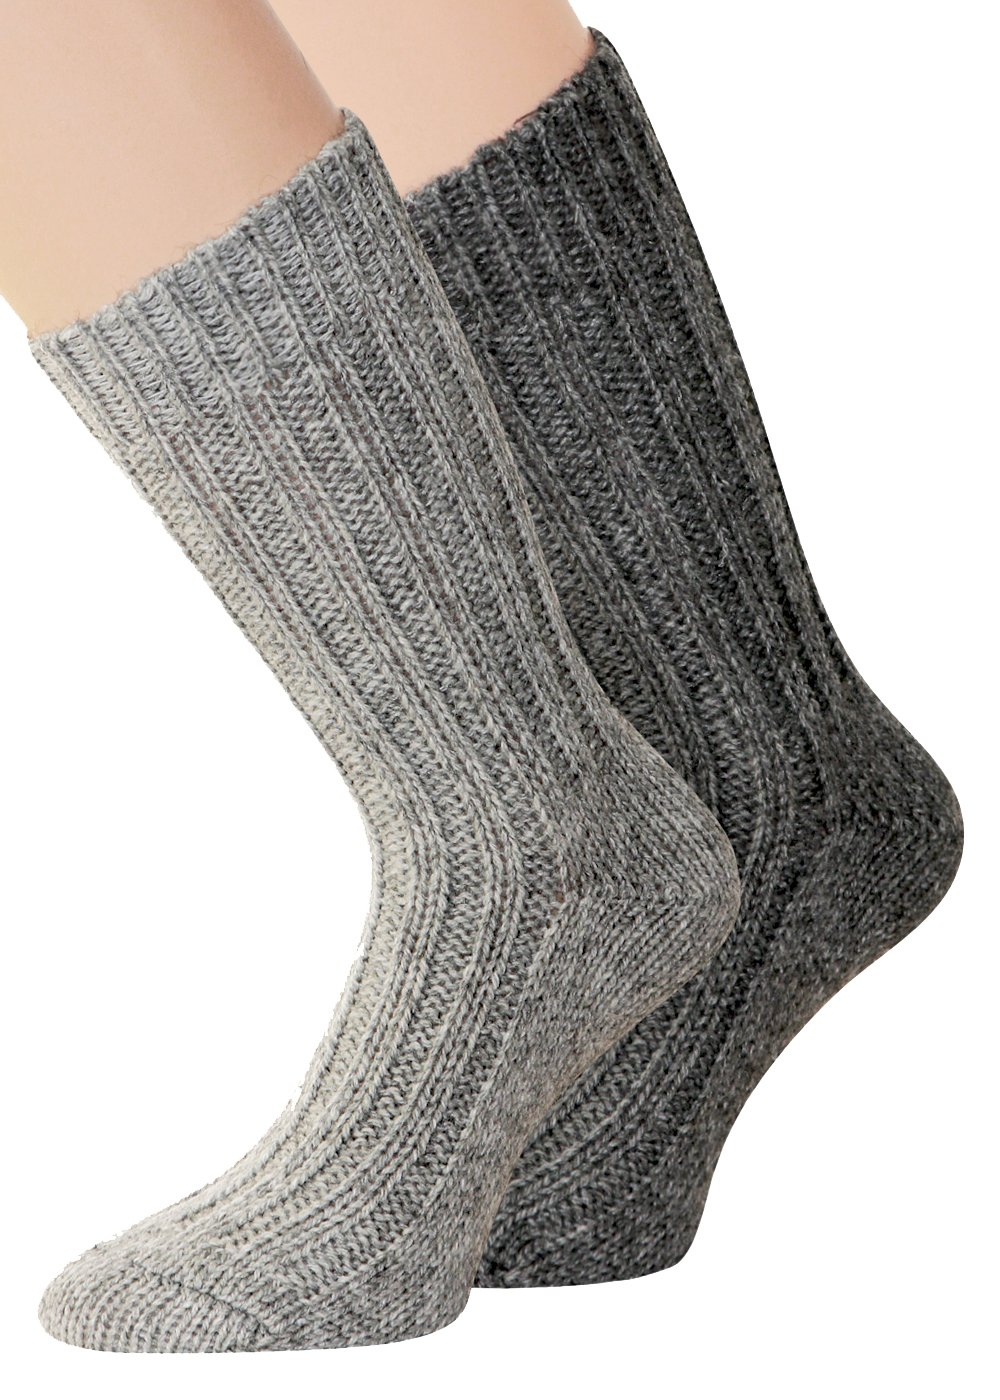 Alpaca Socks 2 Pairs Thick and soft with alpaca, Natural 2-501-F3A-2